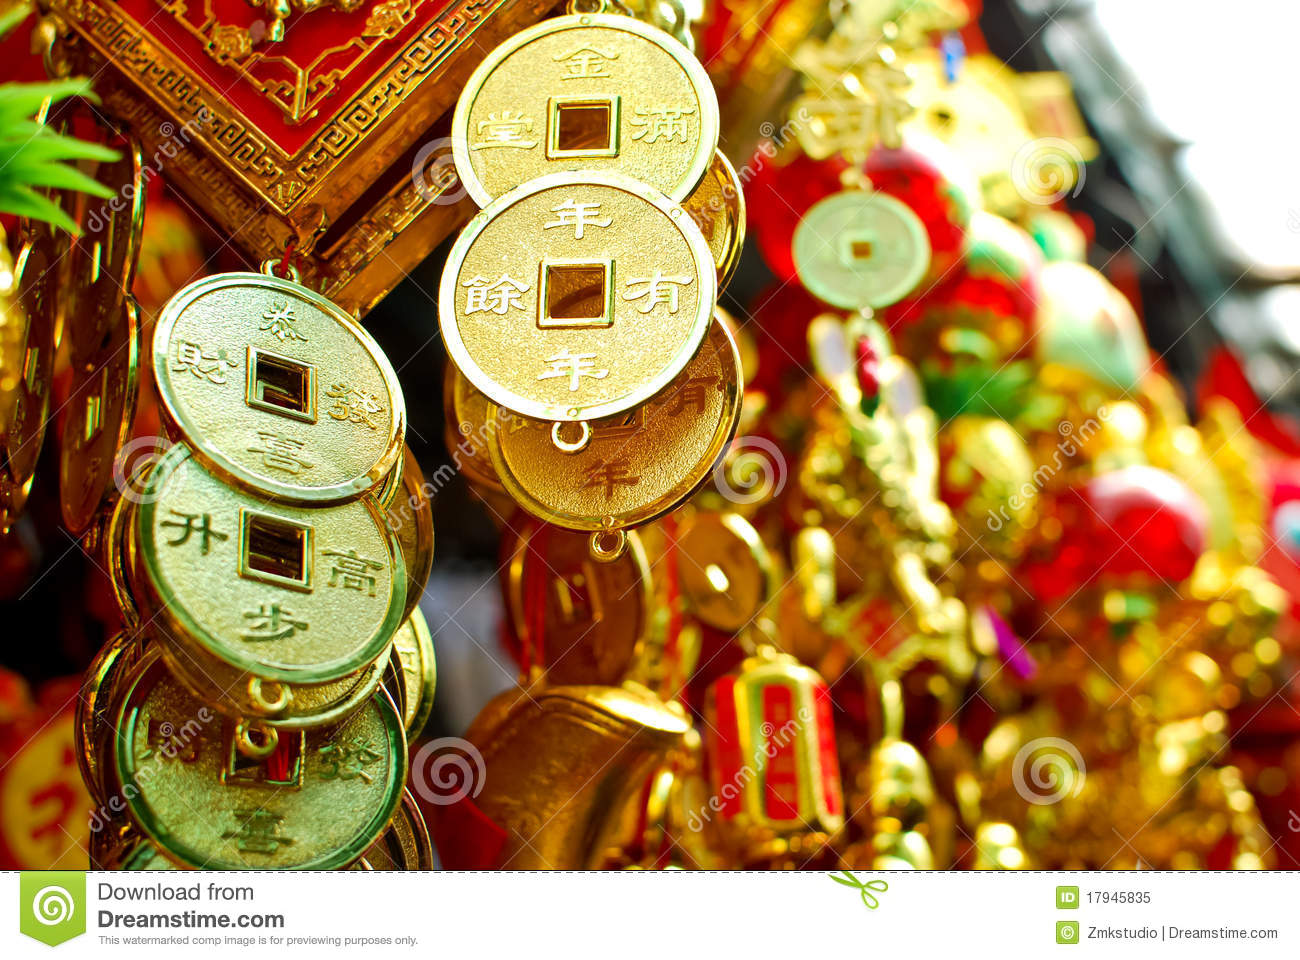 Chinese New Year Decoration Items Royalty Free Stock Photo